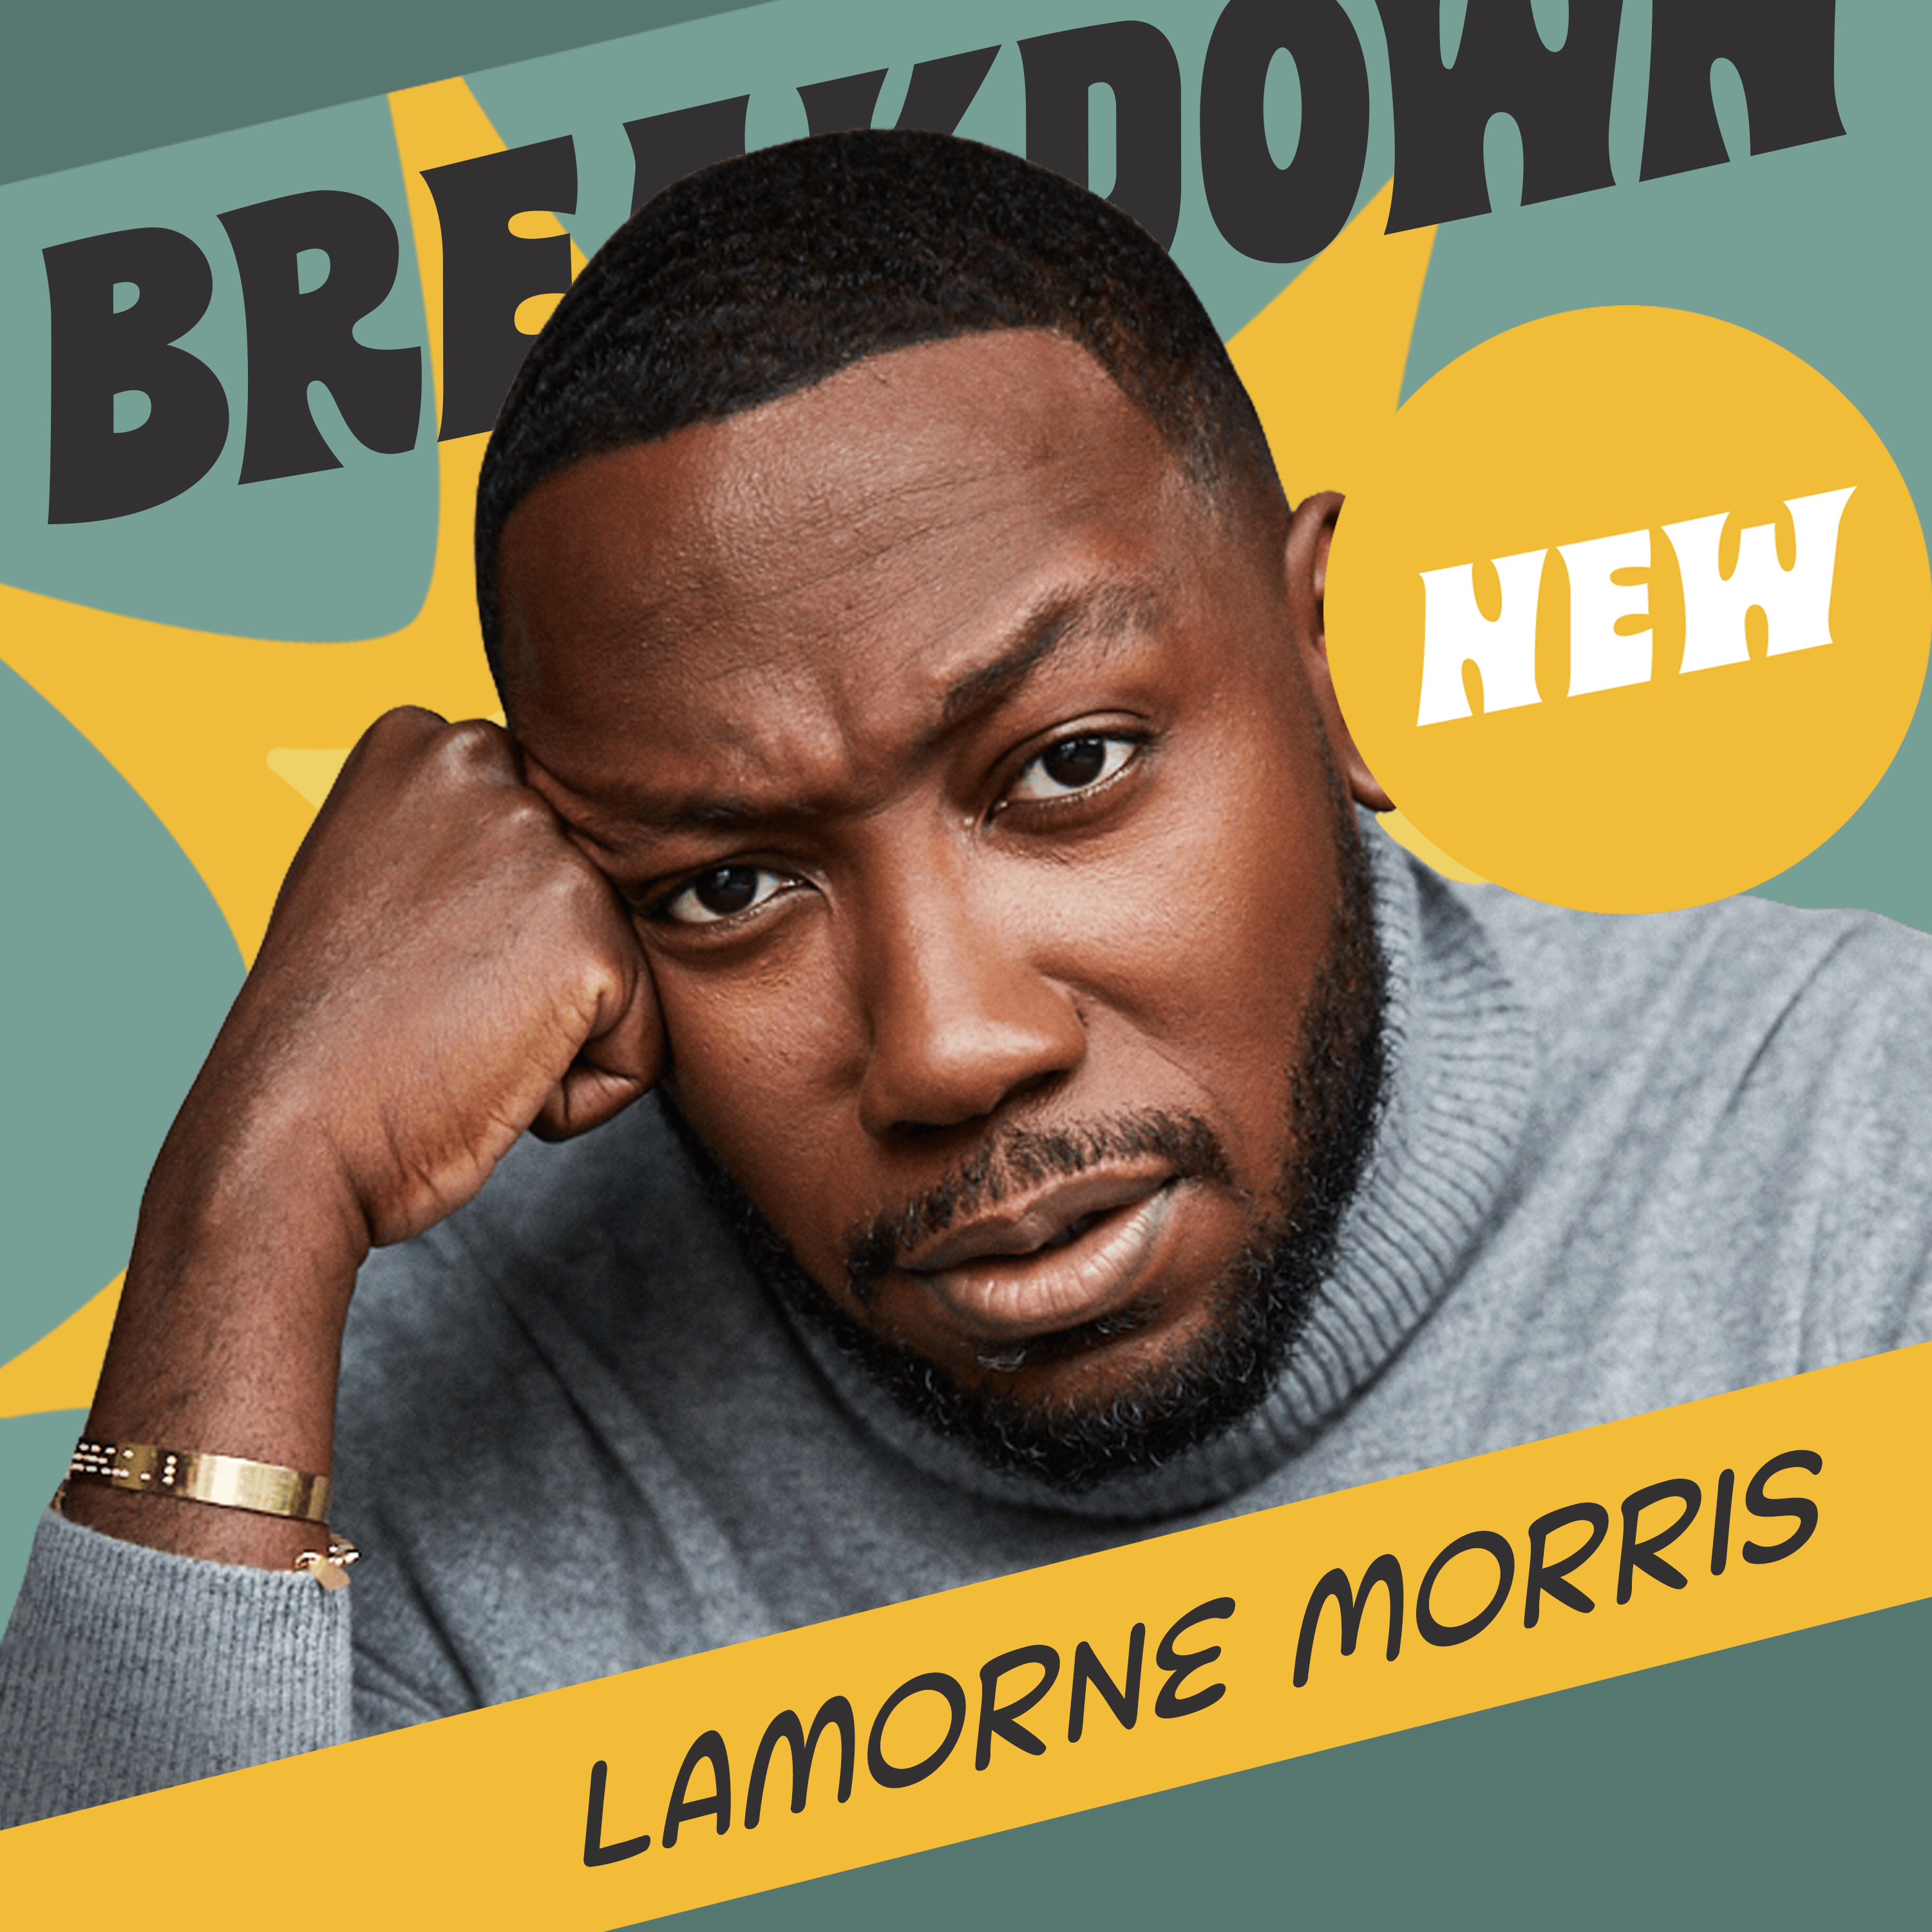 Lamorne Morris: Breaking Barriers, Life Coaching & Different Shades of Black